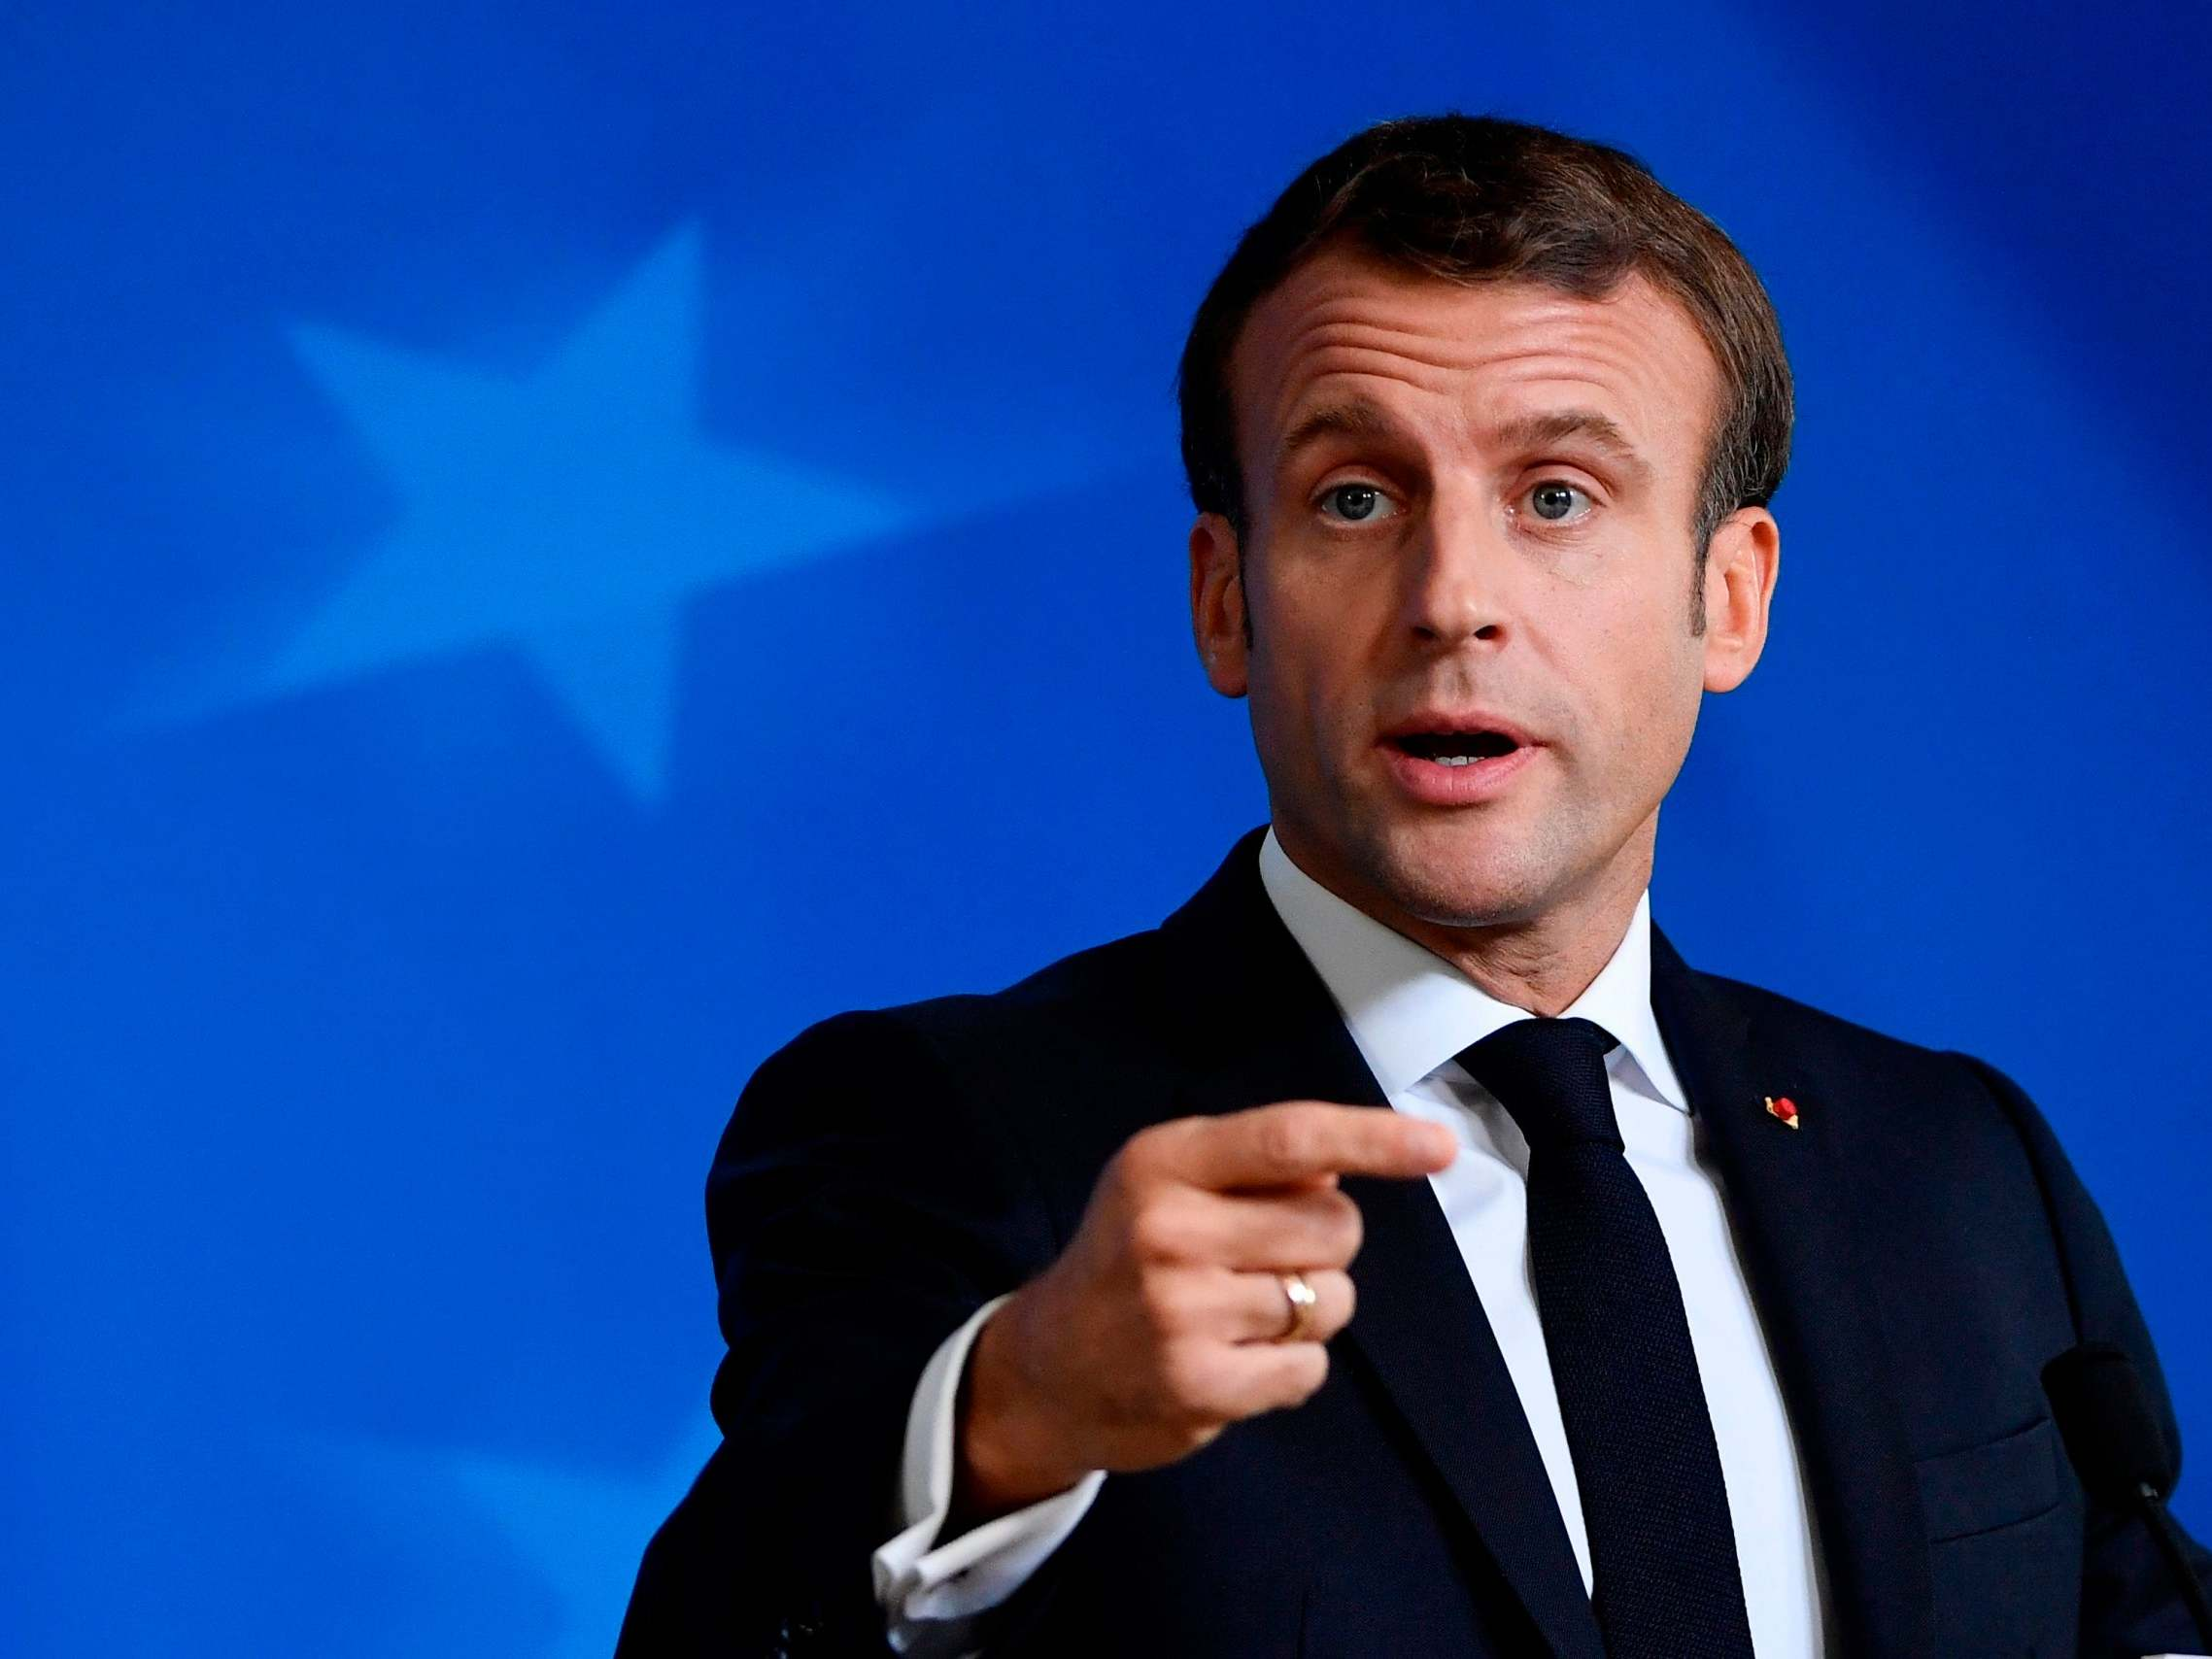 Macron Plans To Bar Refugees From Accessing Medical Care The Independent The Independent